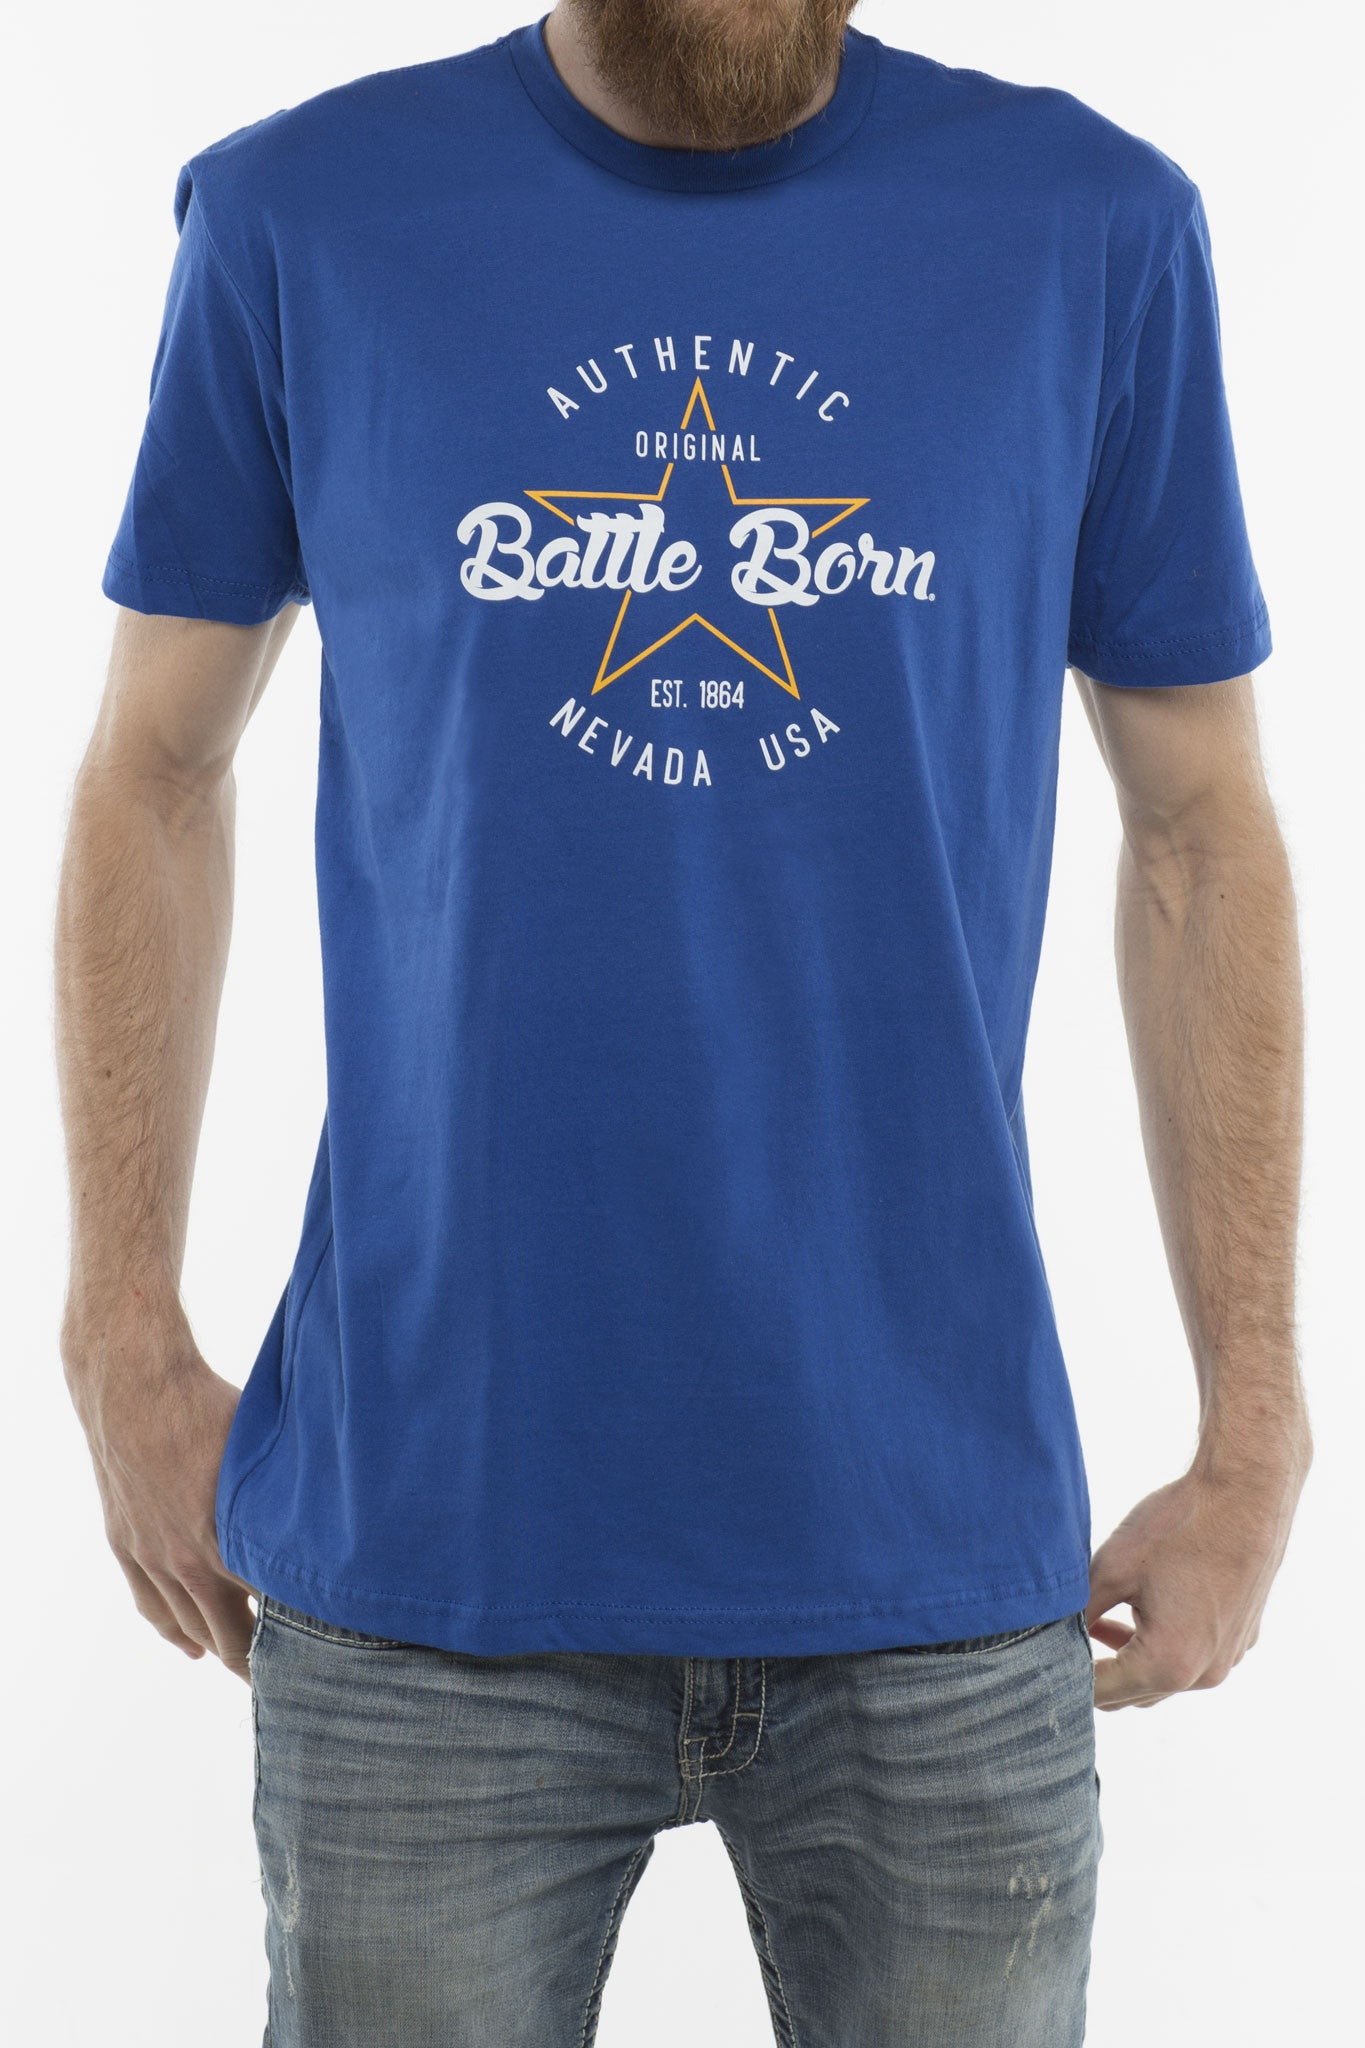 Mens Shirt: Battle Born: Authentic (blue)